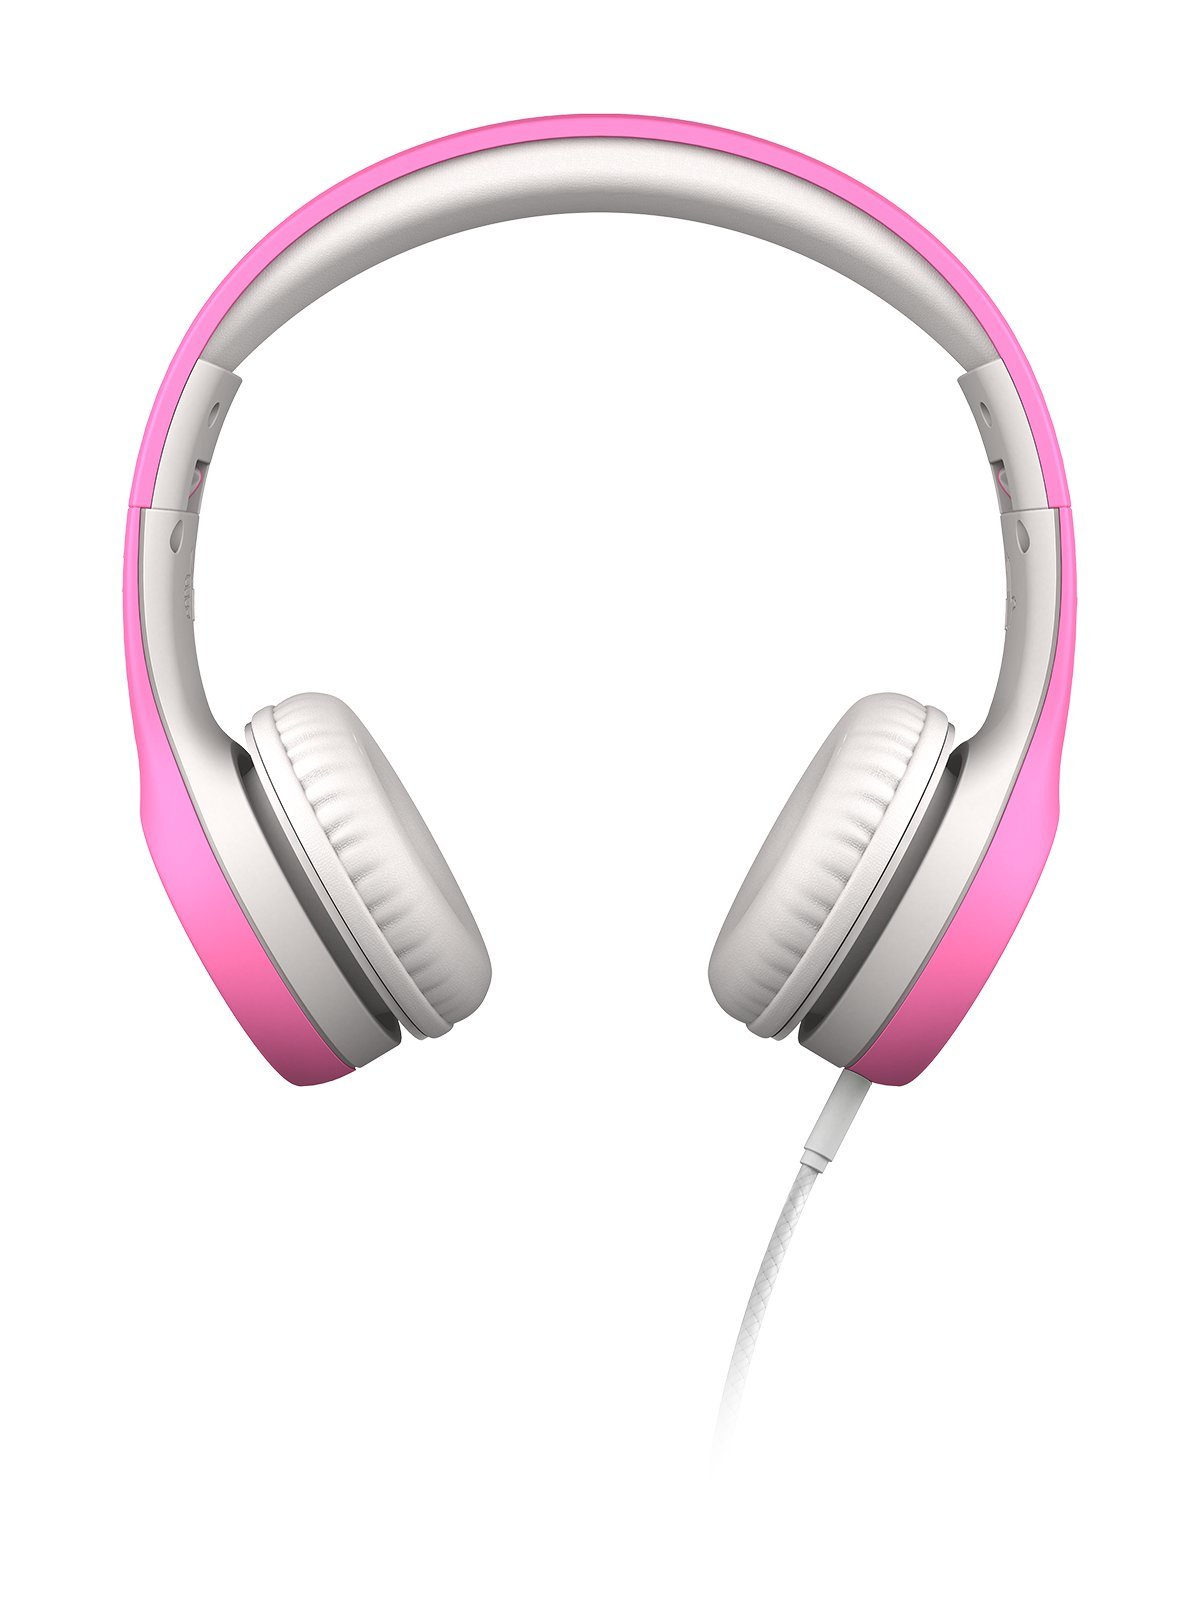 LilGadgets Connect+ Premium Volume Limited Wired Headphones with SharePort for Children/Kids (Pink)